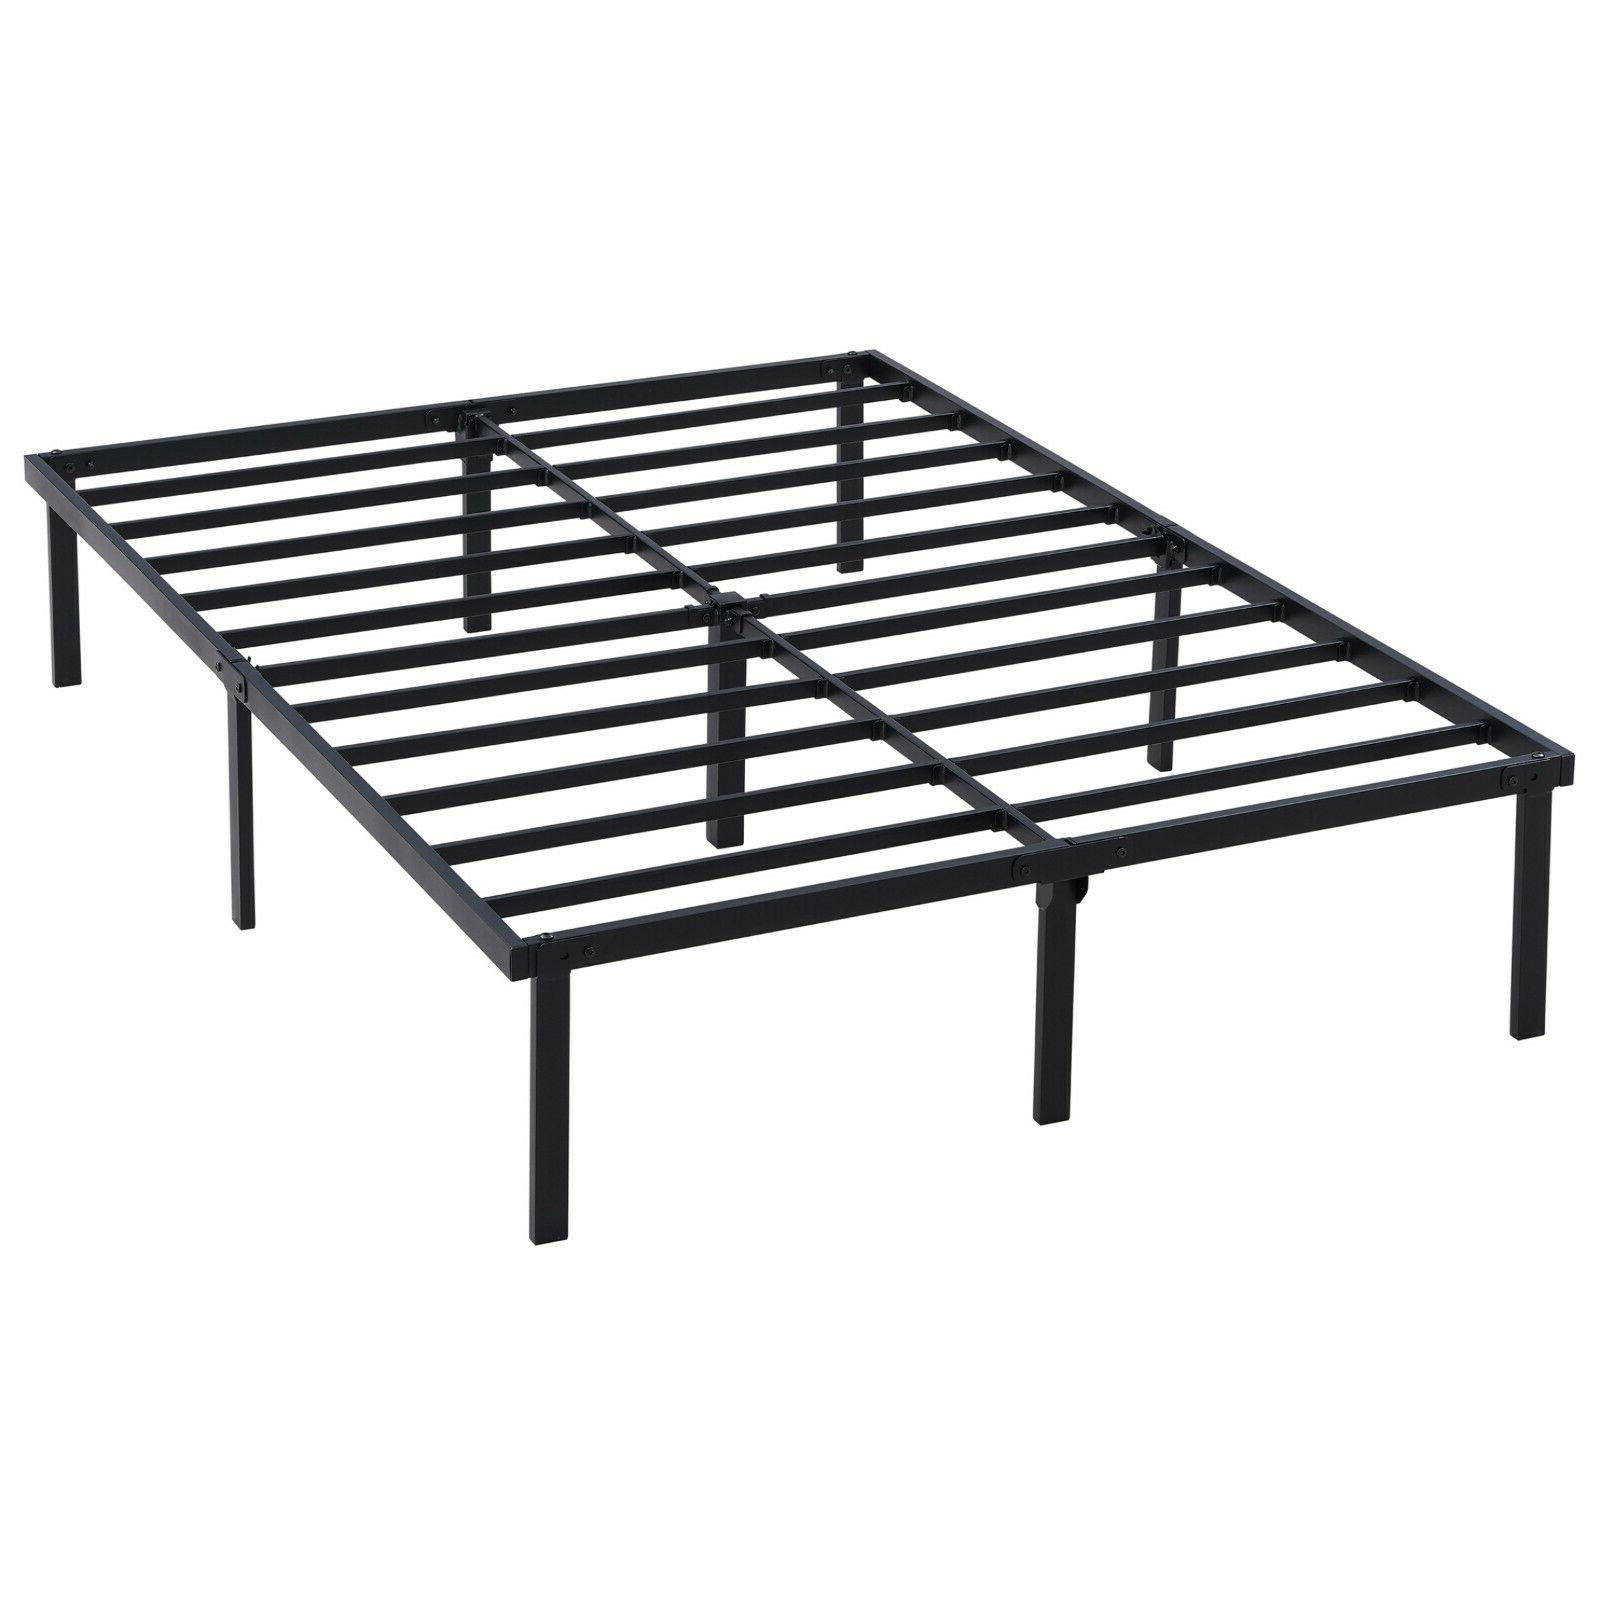 14 inch slat bed frame multiple size